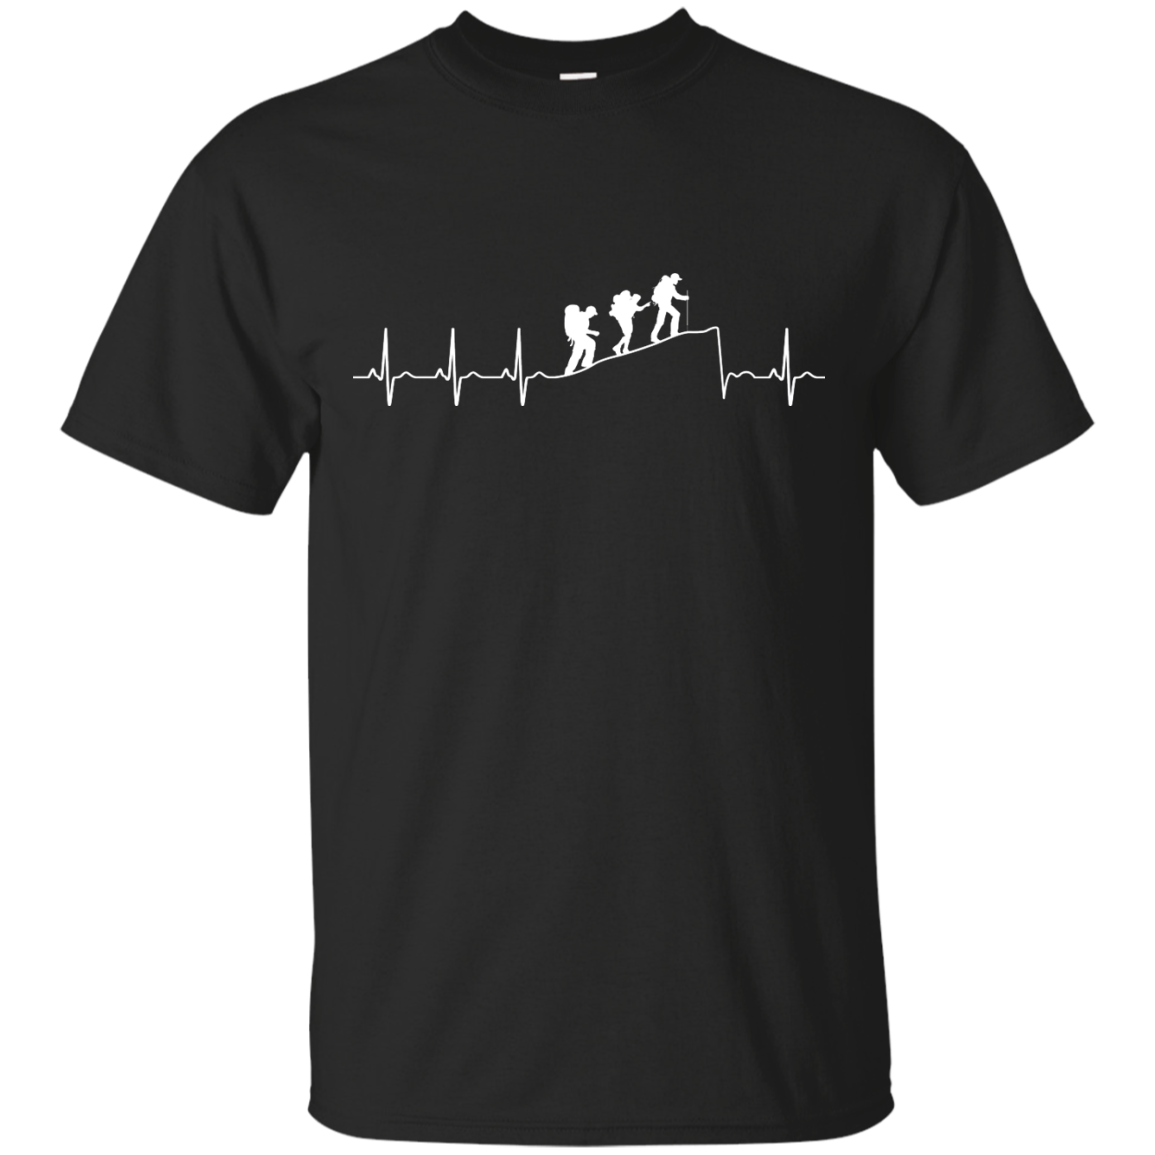 Hiking T-Shirt: Hiking Heart Beat T Shirt, Hoodies, Tank Top